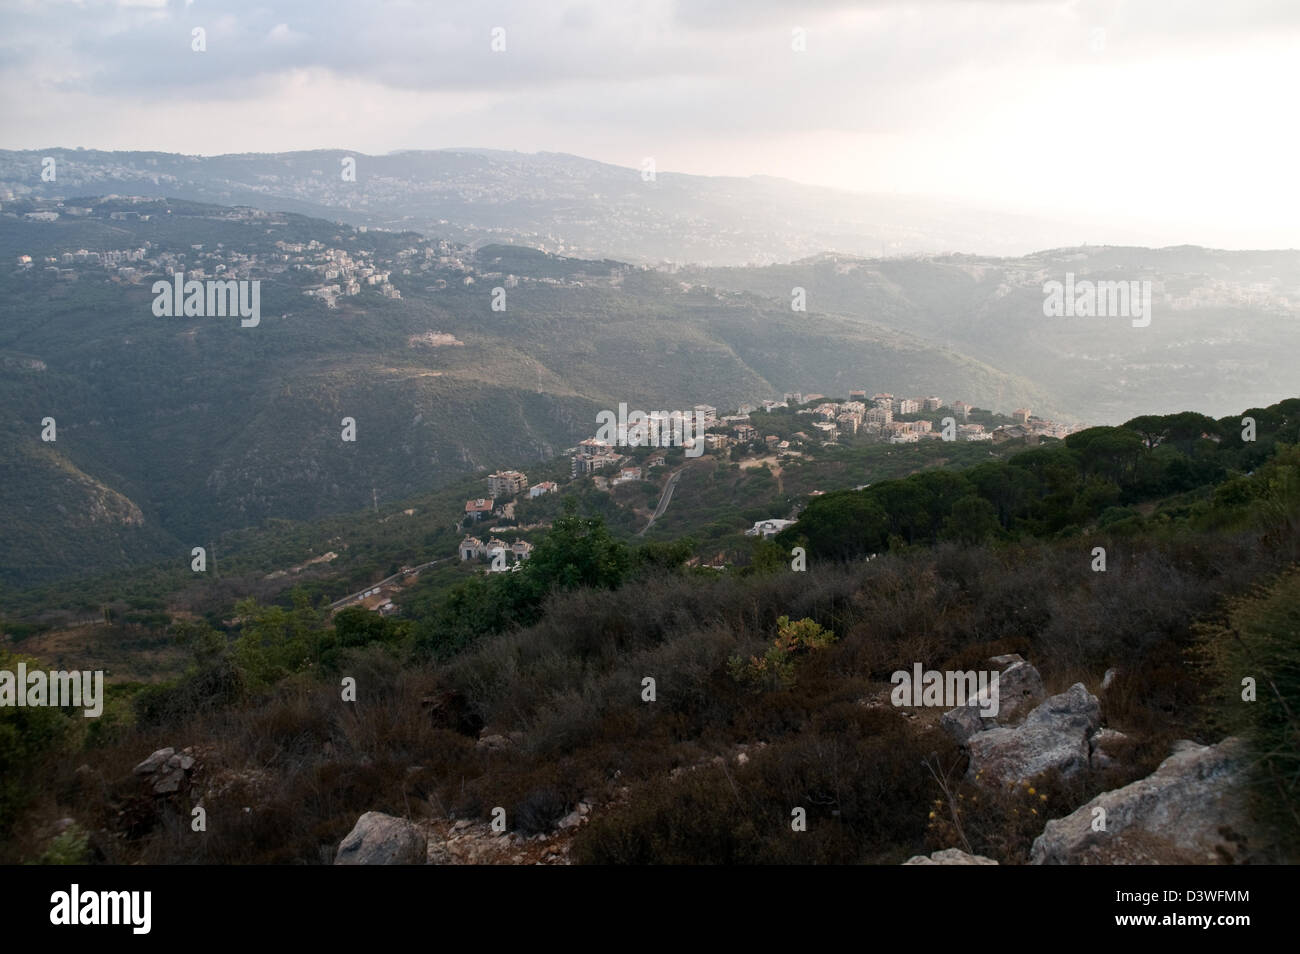 The village of Montiverdi as seen from Beit Meri in the Christian Mount Lebanon region north of Beirut, Lebanon. - Stock Image